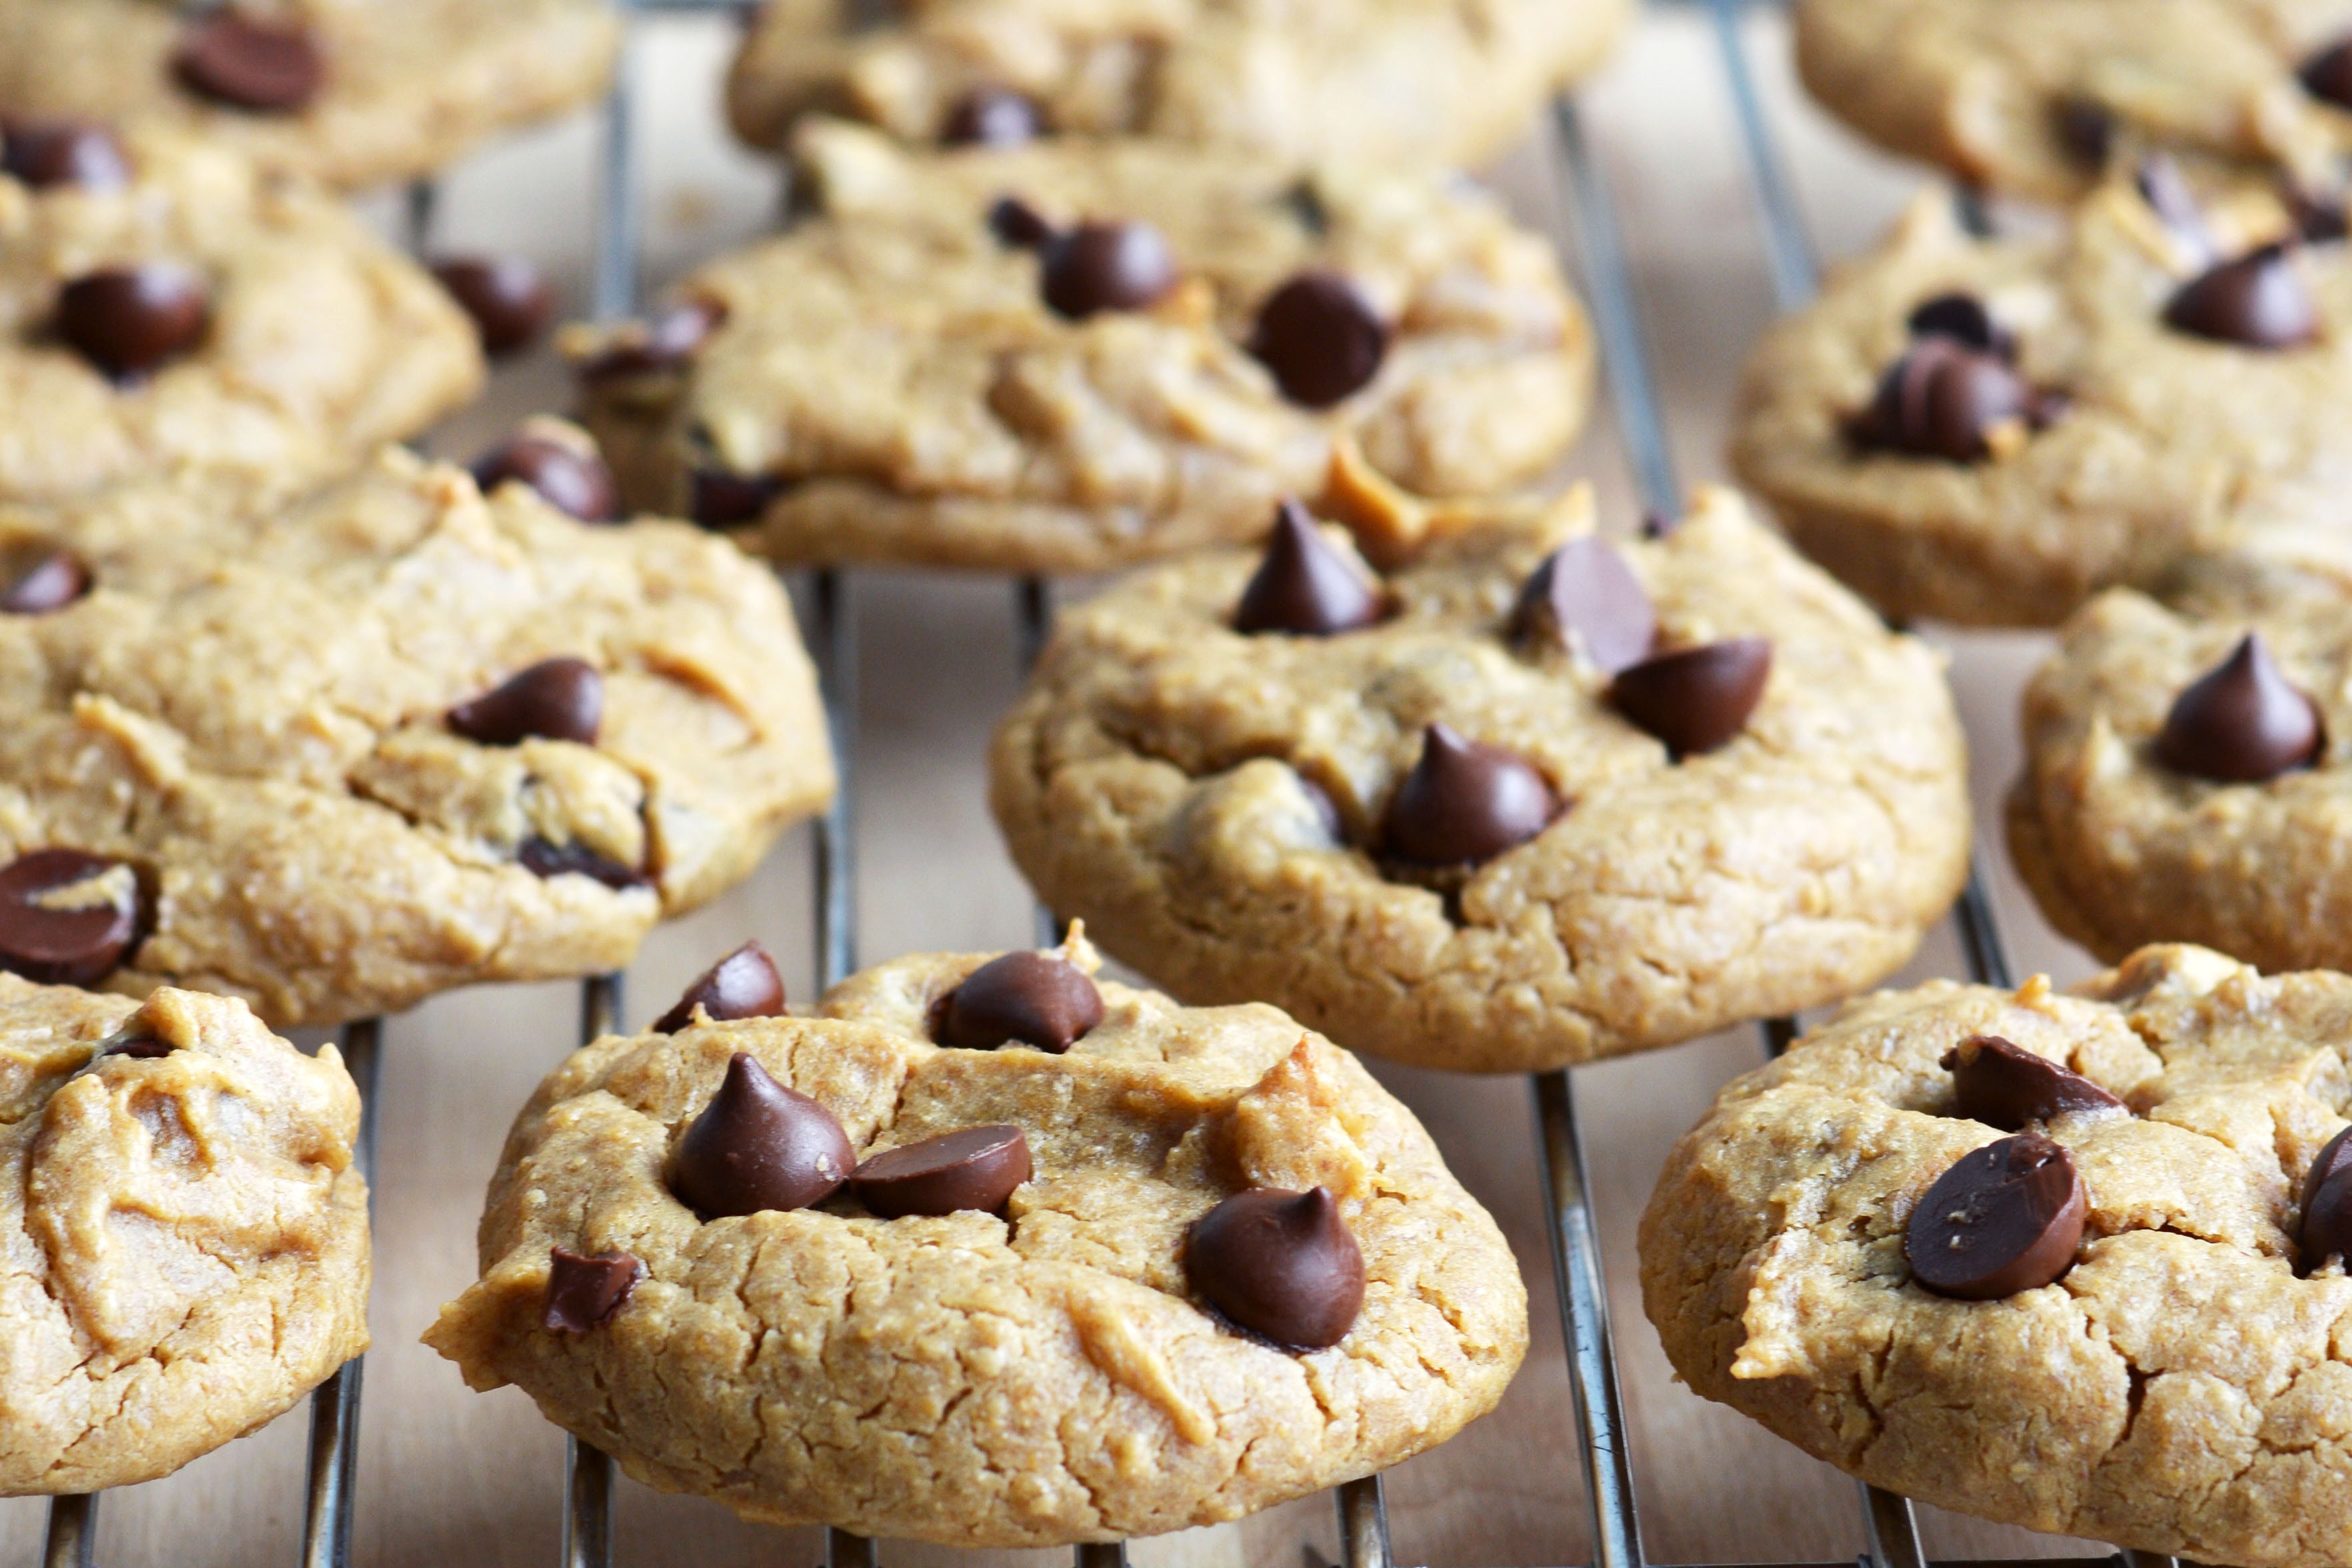 Chickpea Chocolate Chip Cookies  The BEST Chickpea Chocolate Chip Cookies Vegan & Gluten